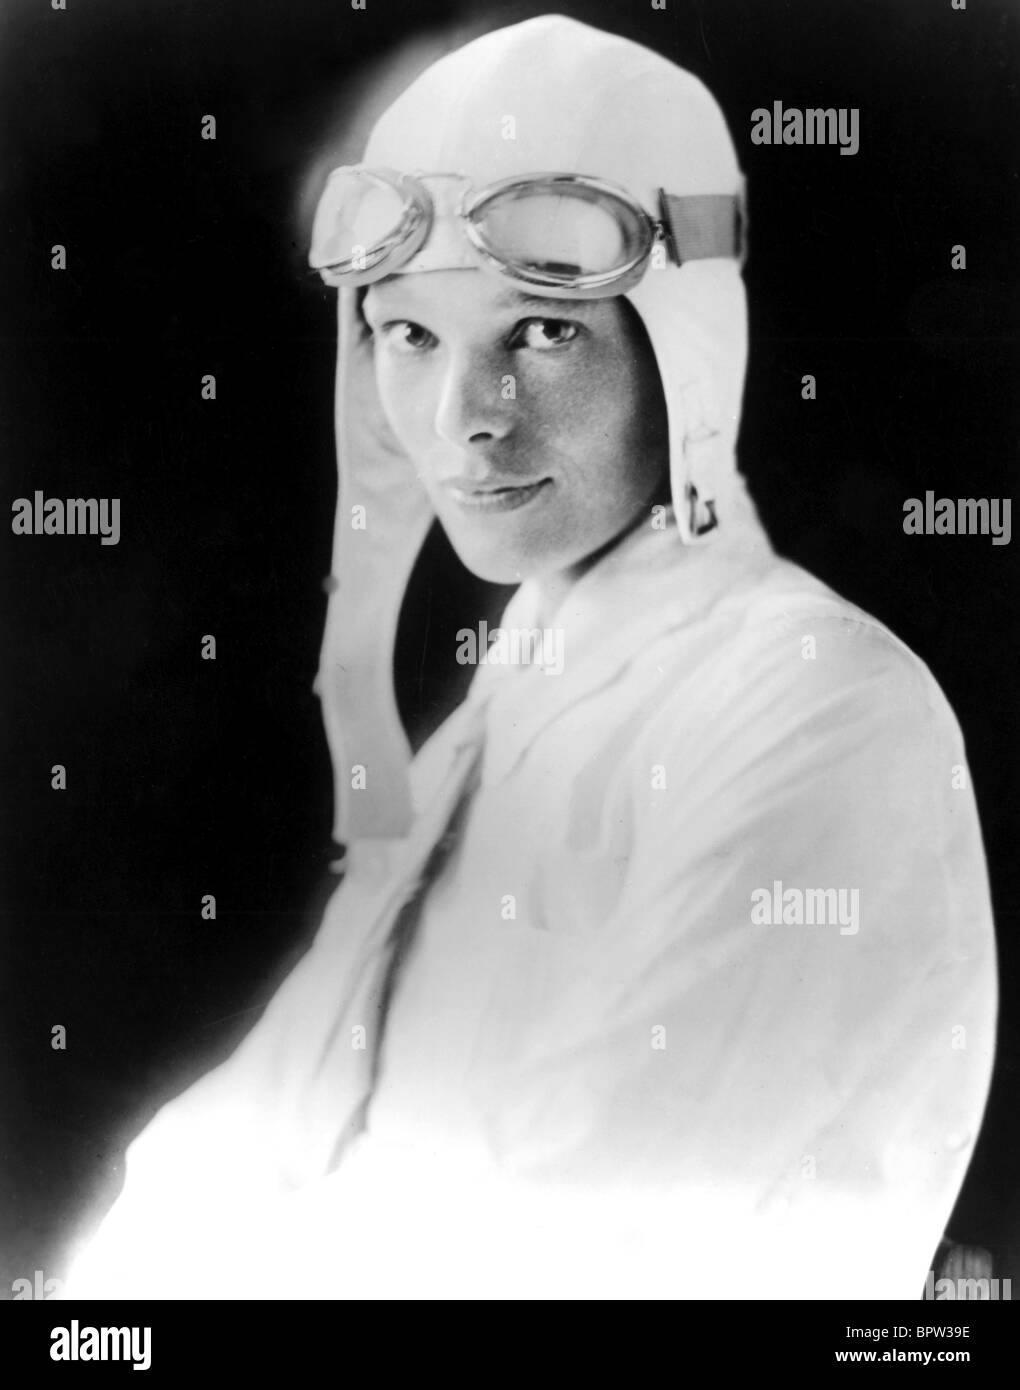 AMELIA EARHART PILOT 01 May 1930 - Stock Image